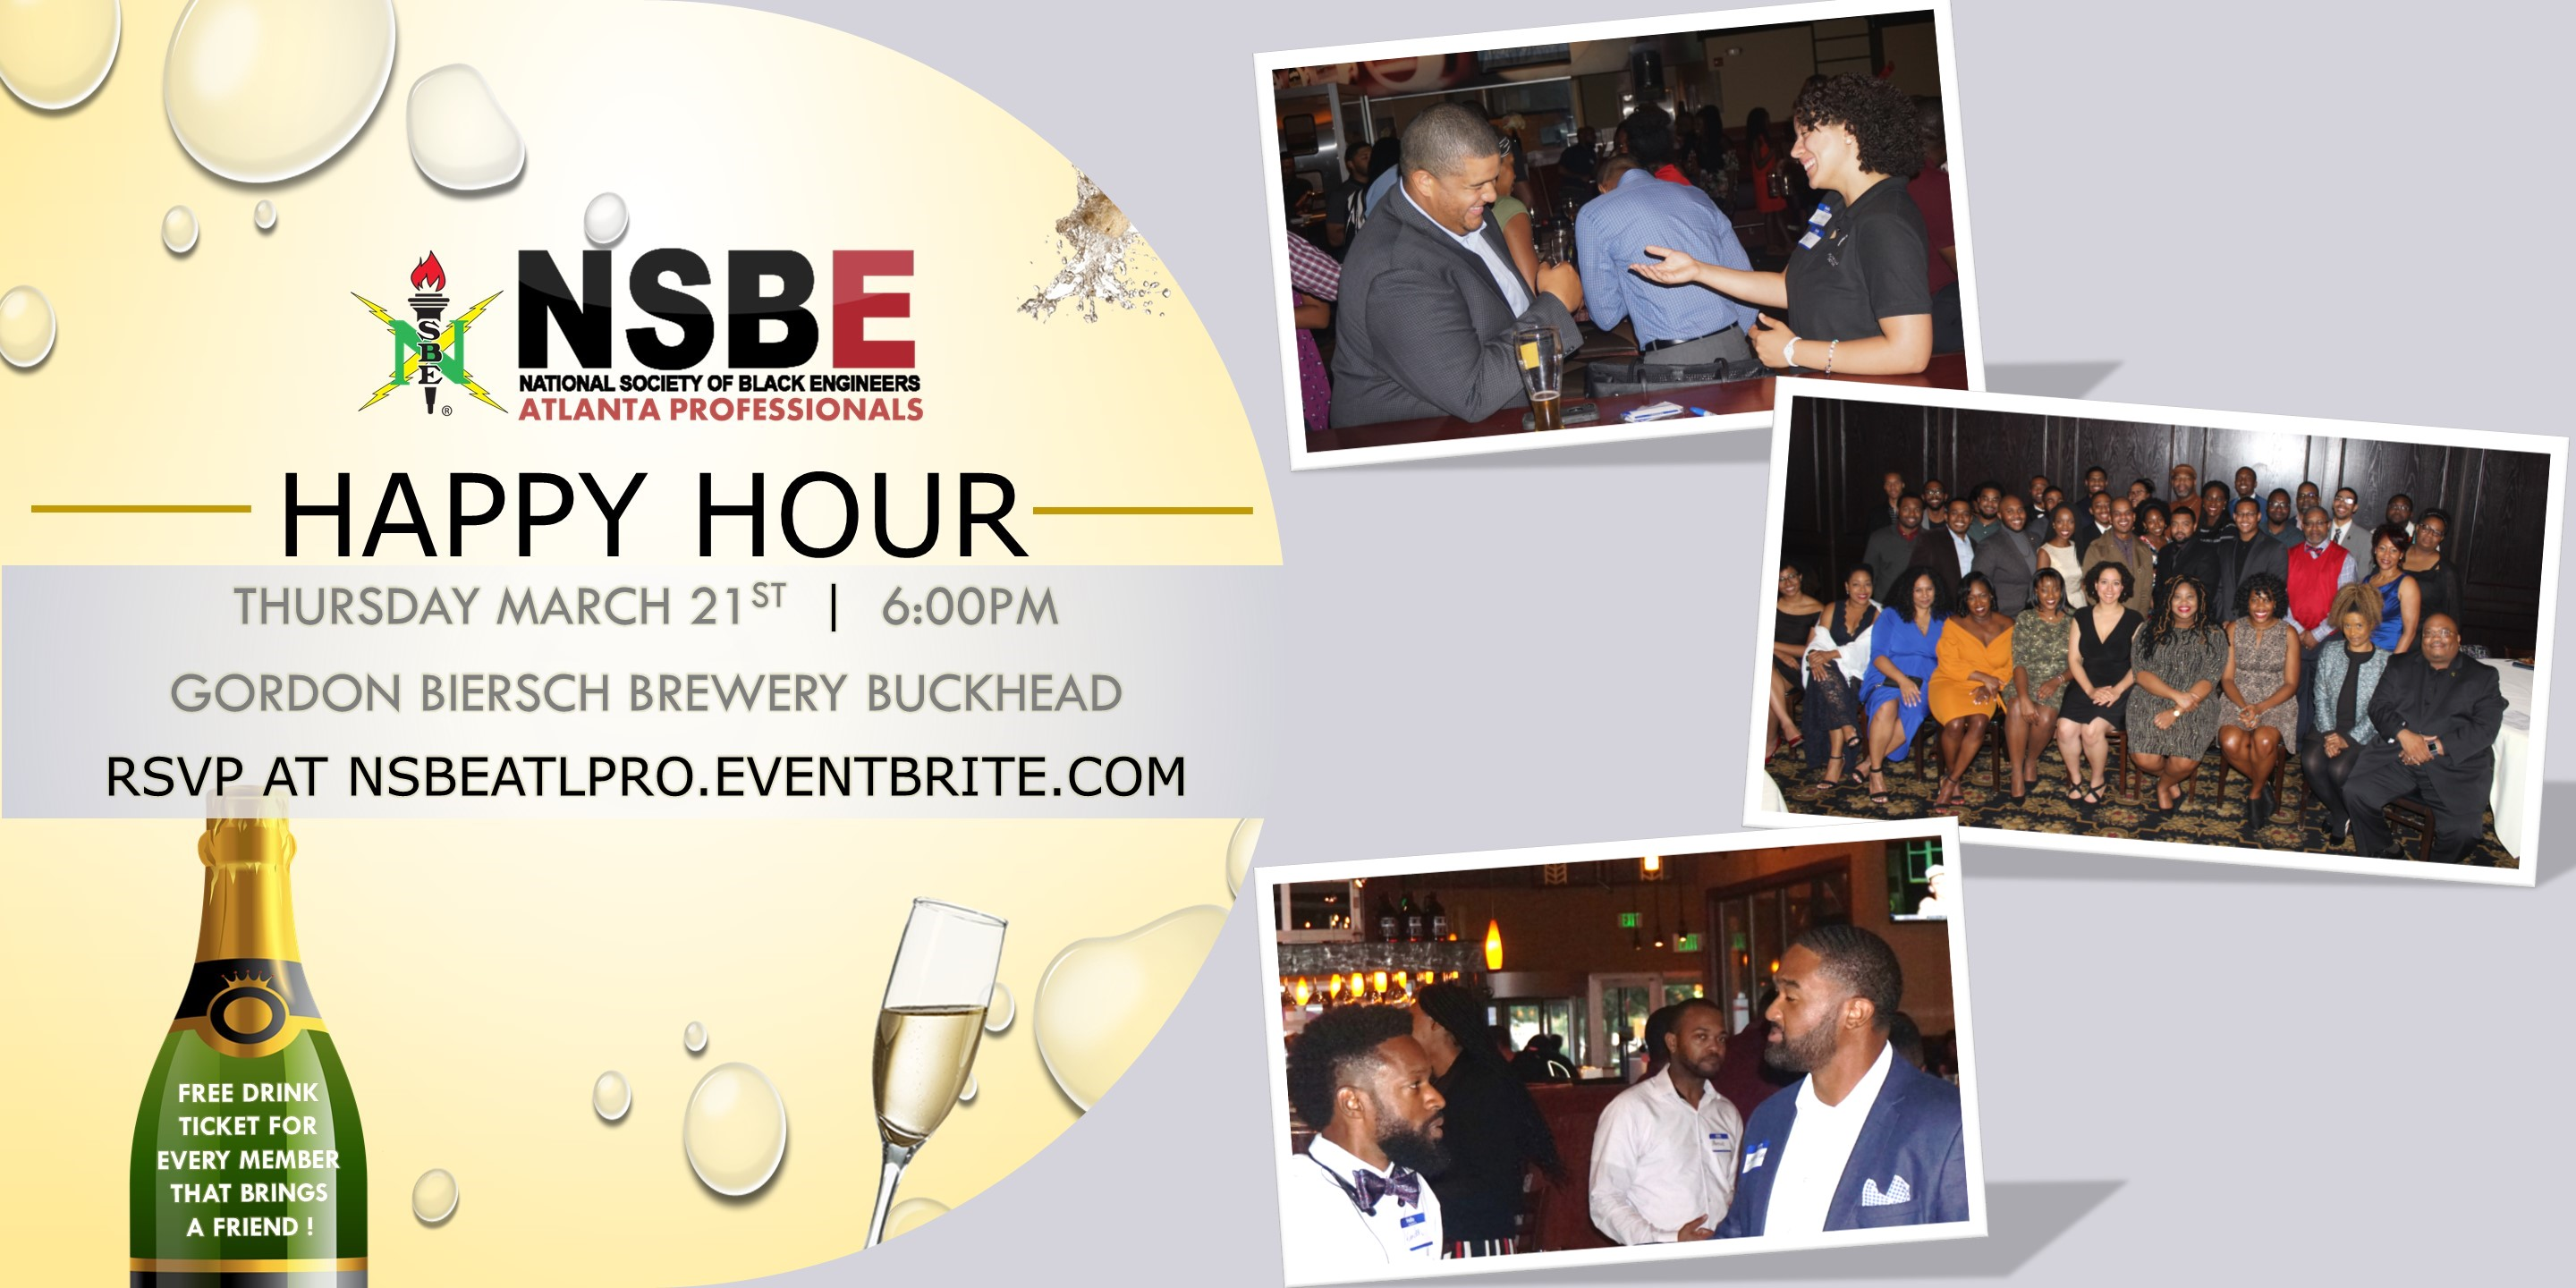 http://nsbeatlantaprofessionals.org/wp-content/uploads/2019/03/nsbe-march-happy-hour-full.jpg